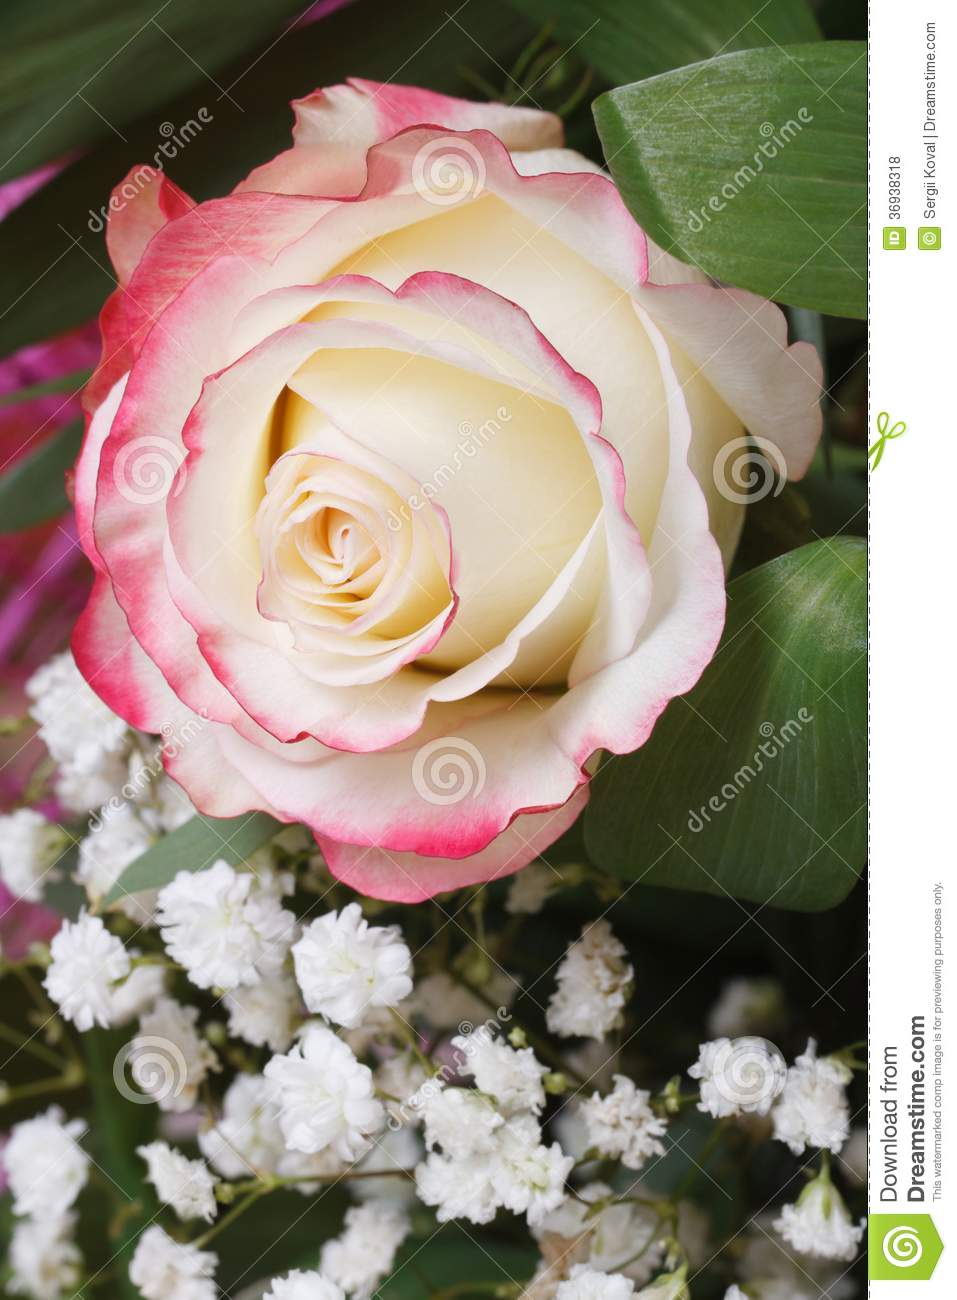 White Rose With Pink Edges With Babys Breath Flowers Stock Photo